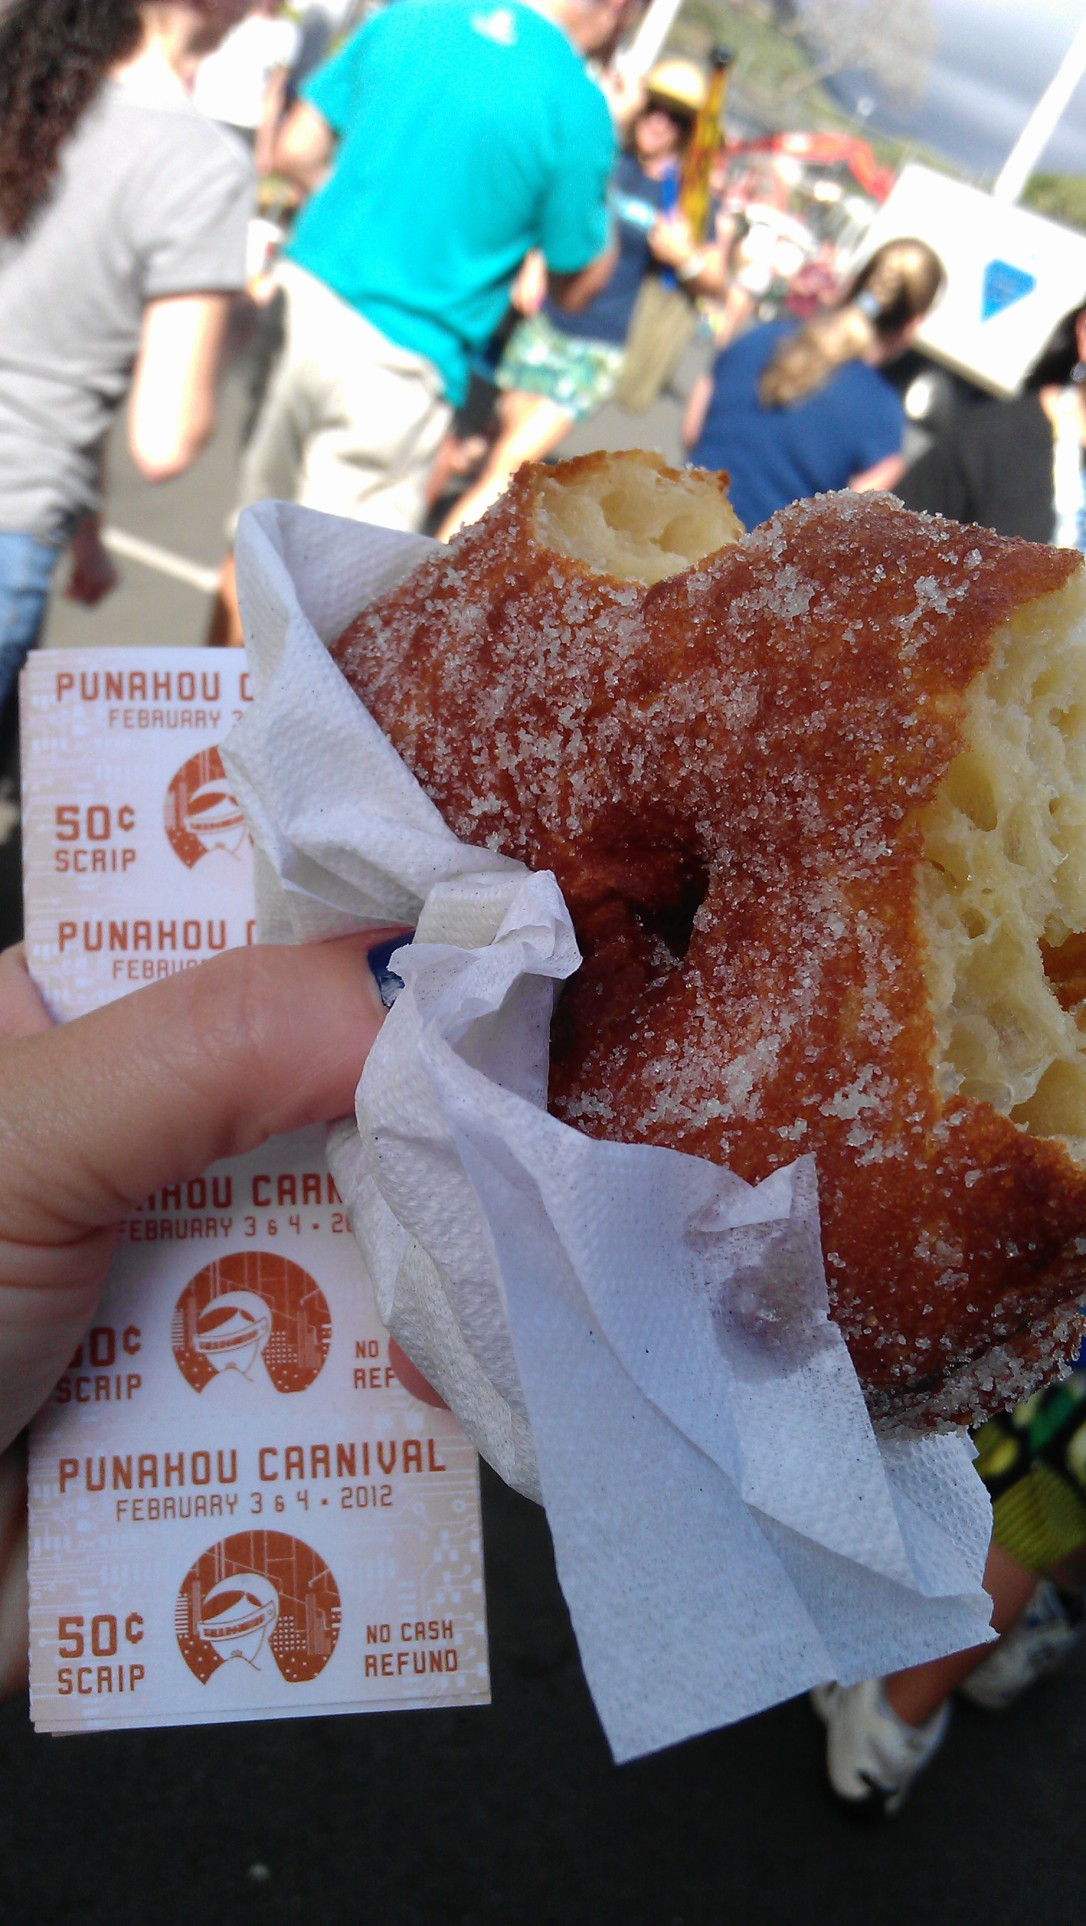 Punahou Carnival -- scrip and malasada